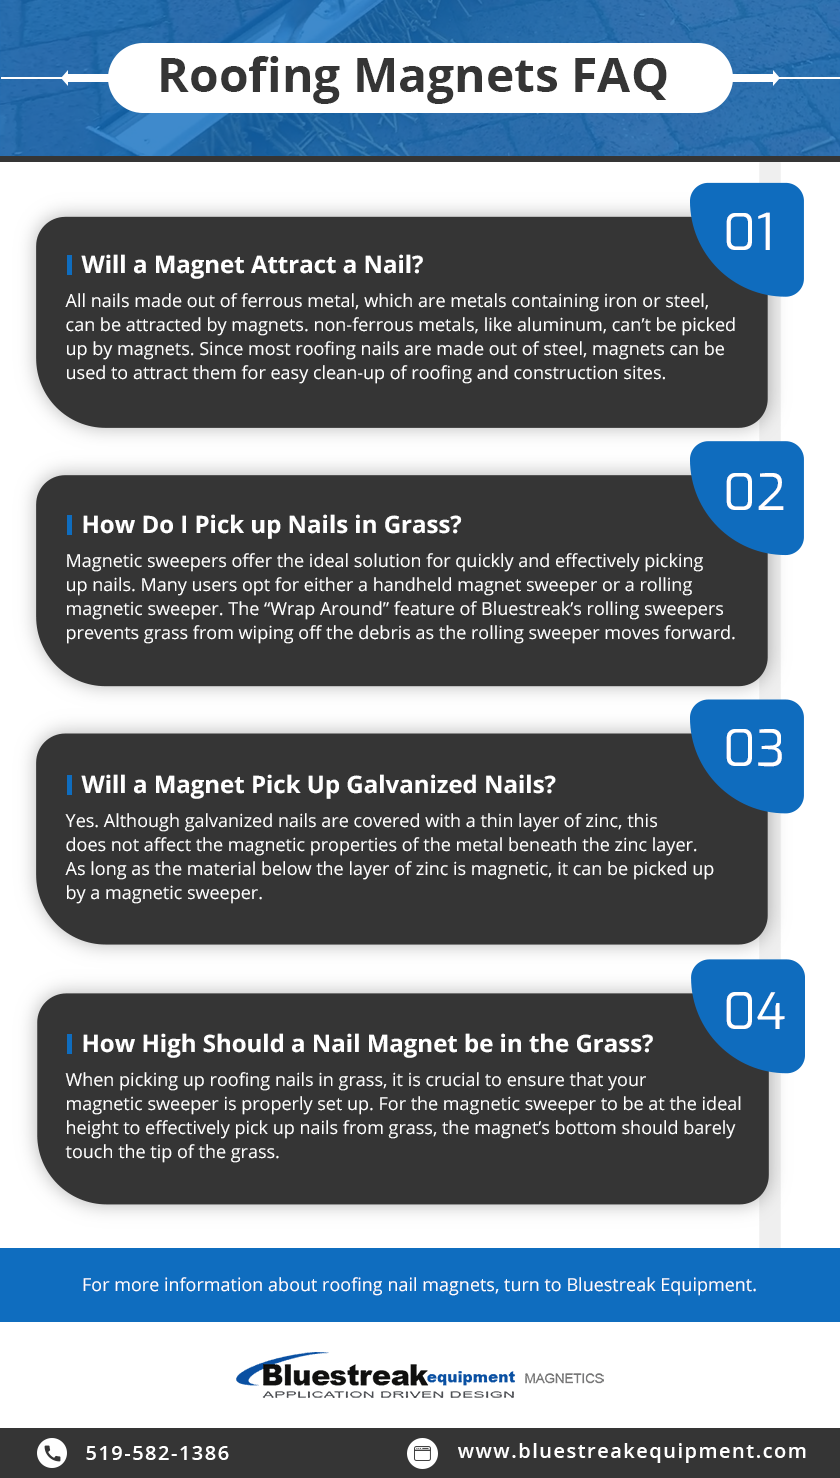 Roofing Magnets FAQ Infographic